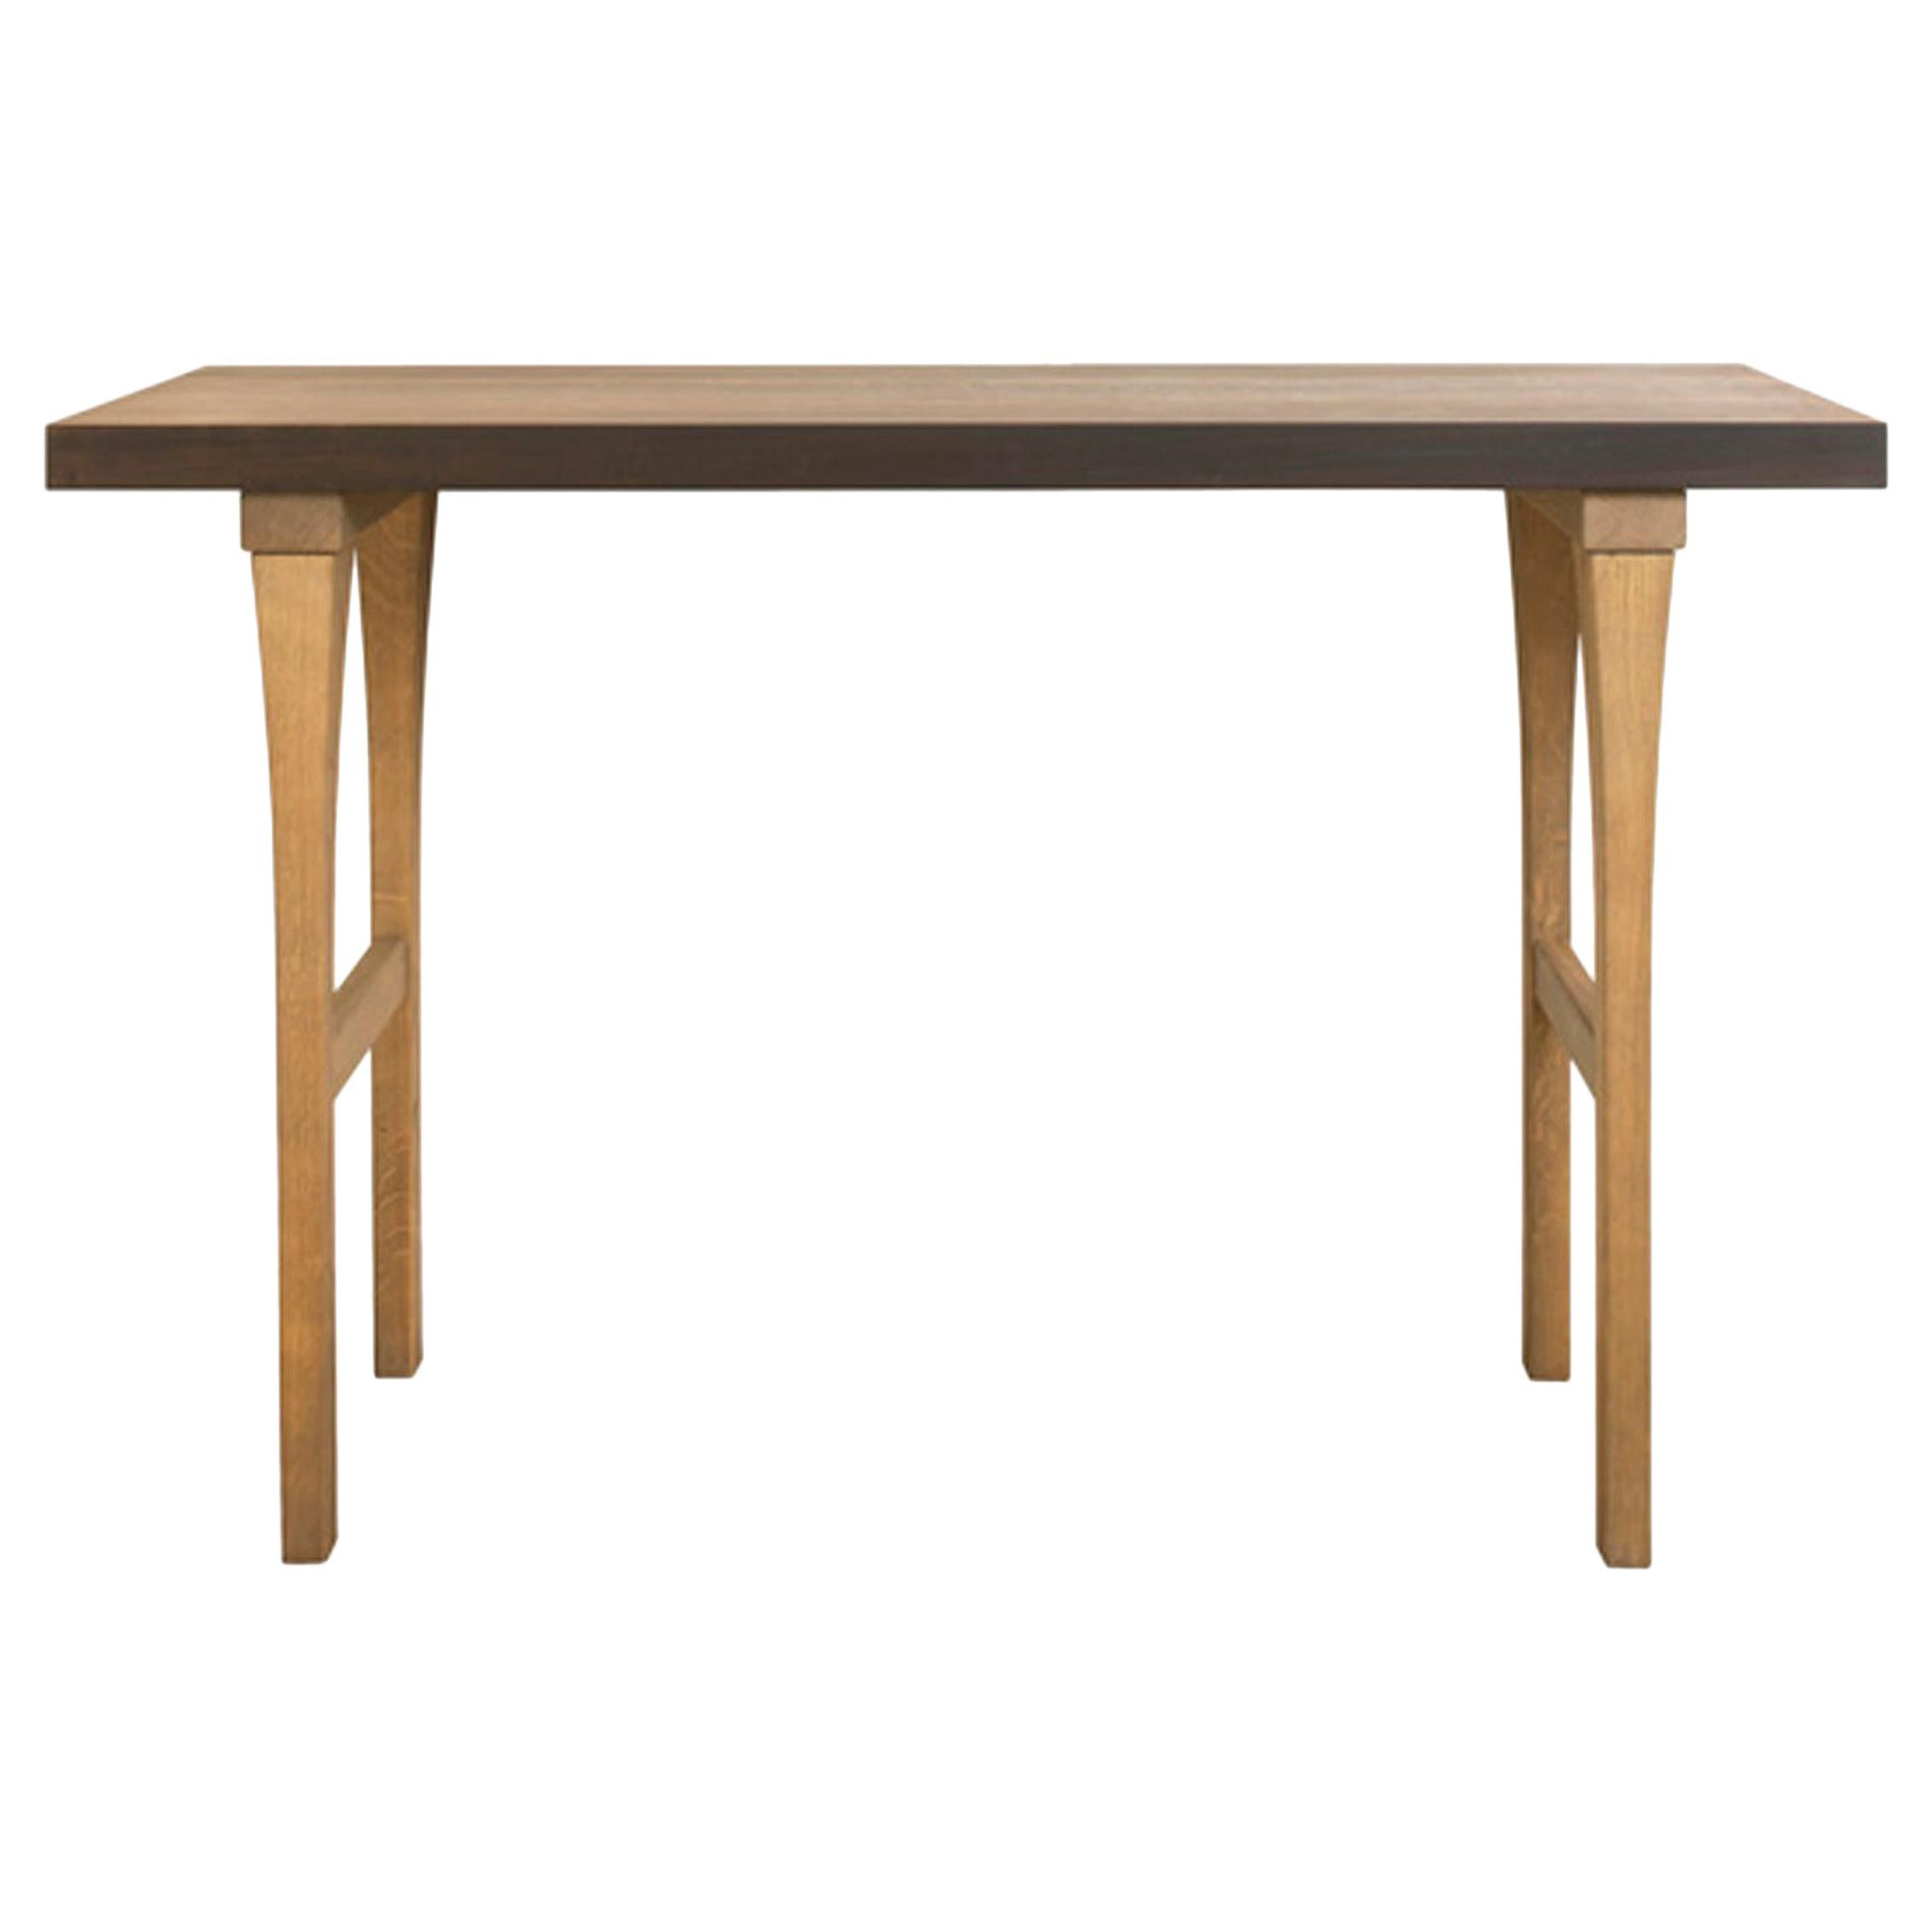 Atelier Linné Ming Console in Tinted Oak and Oiled Eucalyptus